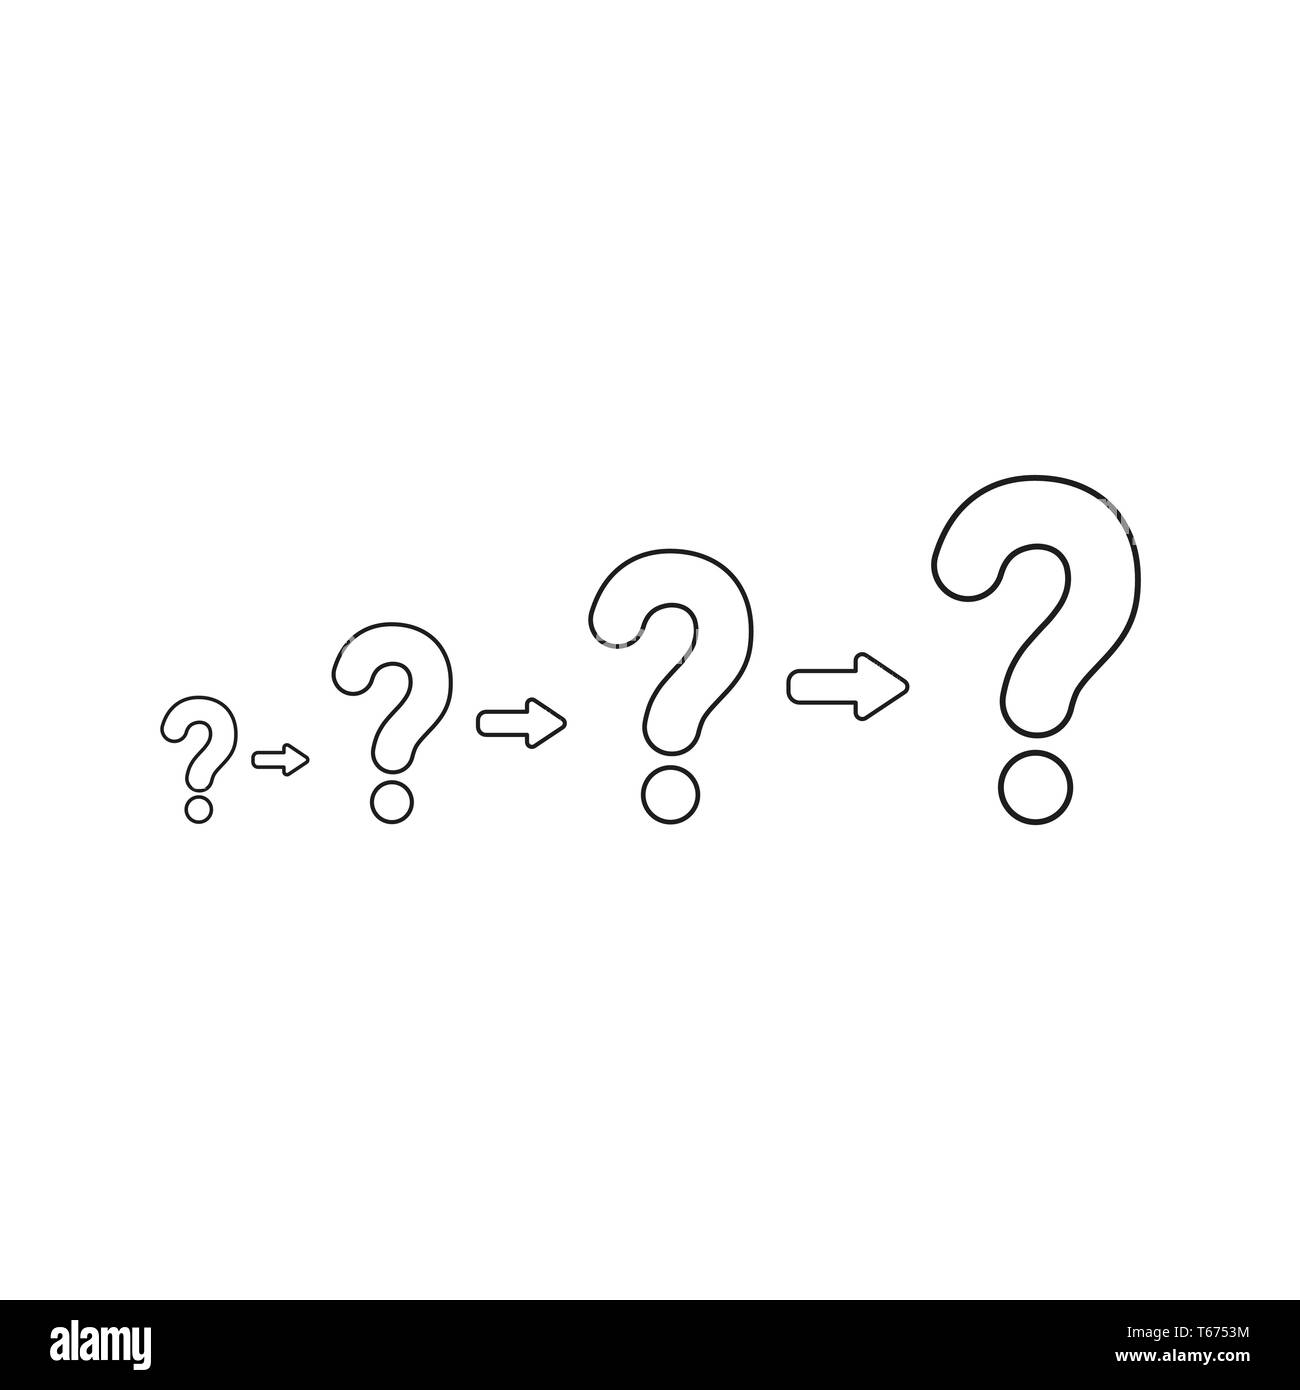 Vector illustration concept of growing problems with question marks. Black outlines. - Stock Image